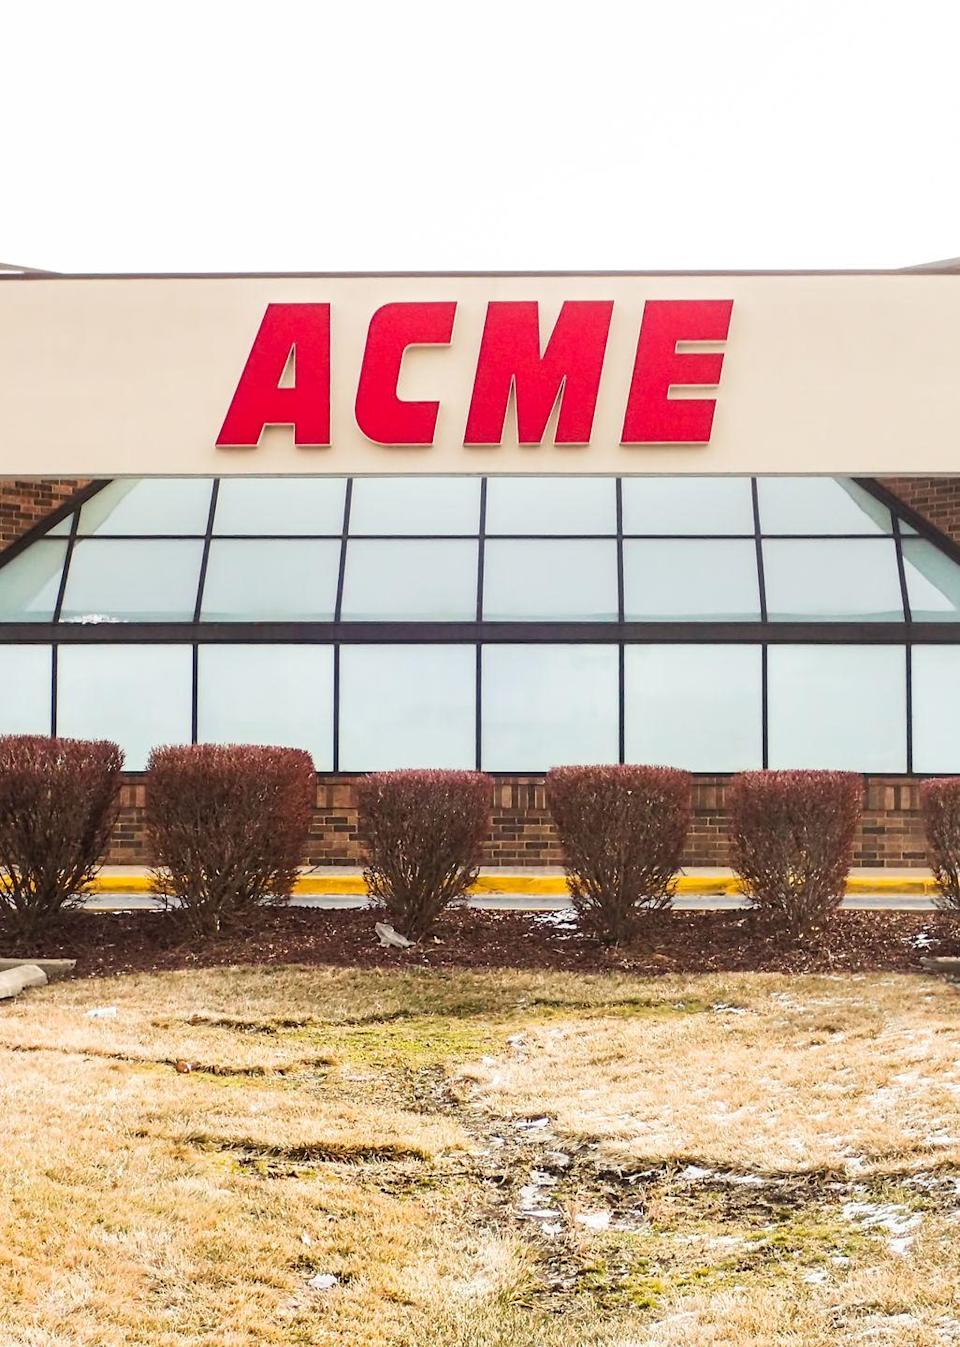 "<p><a href=""https://www.acmemarkets.com/"" rel=""nofollow noopener"" target=""_blank"" data-ylk=""slk:Acme"" class=""link rapid-noclick-resp"">Acme</a> has always been open in the past on Thanksgiving, but check with your local store to confirm the full hours before heading over to pick up a last-minute pan of mashed potatoes.</p>"